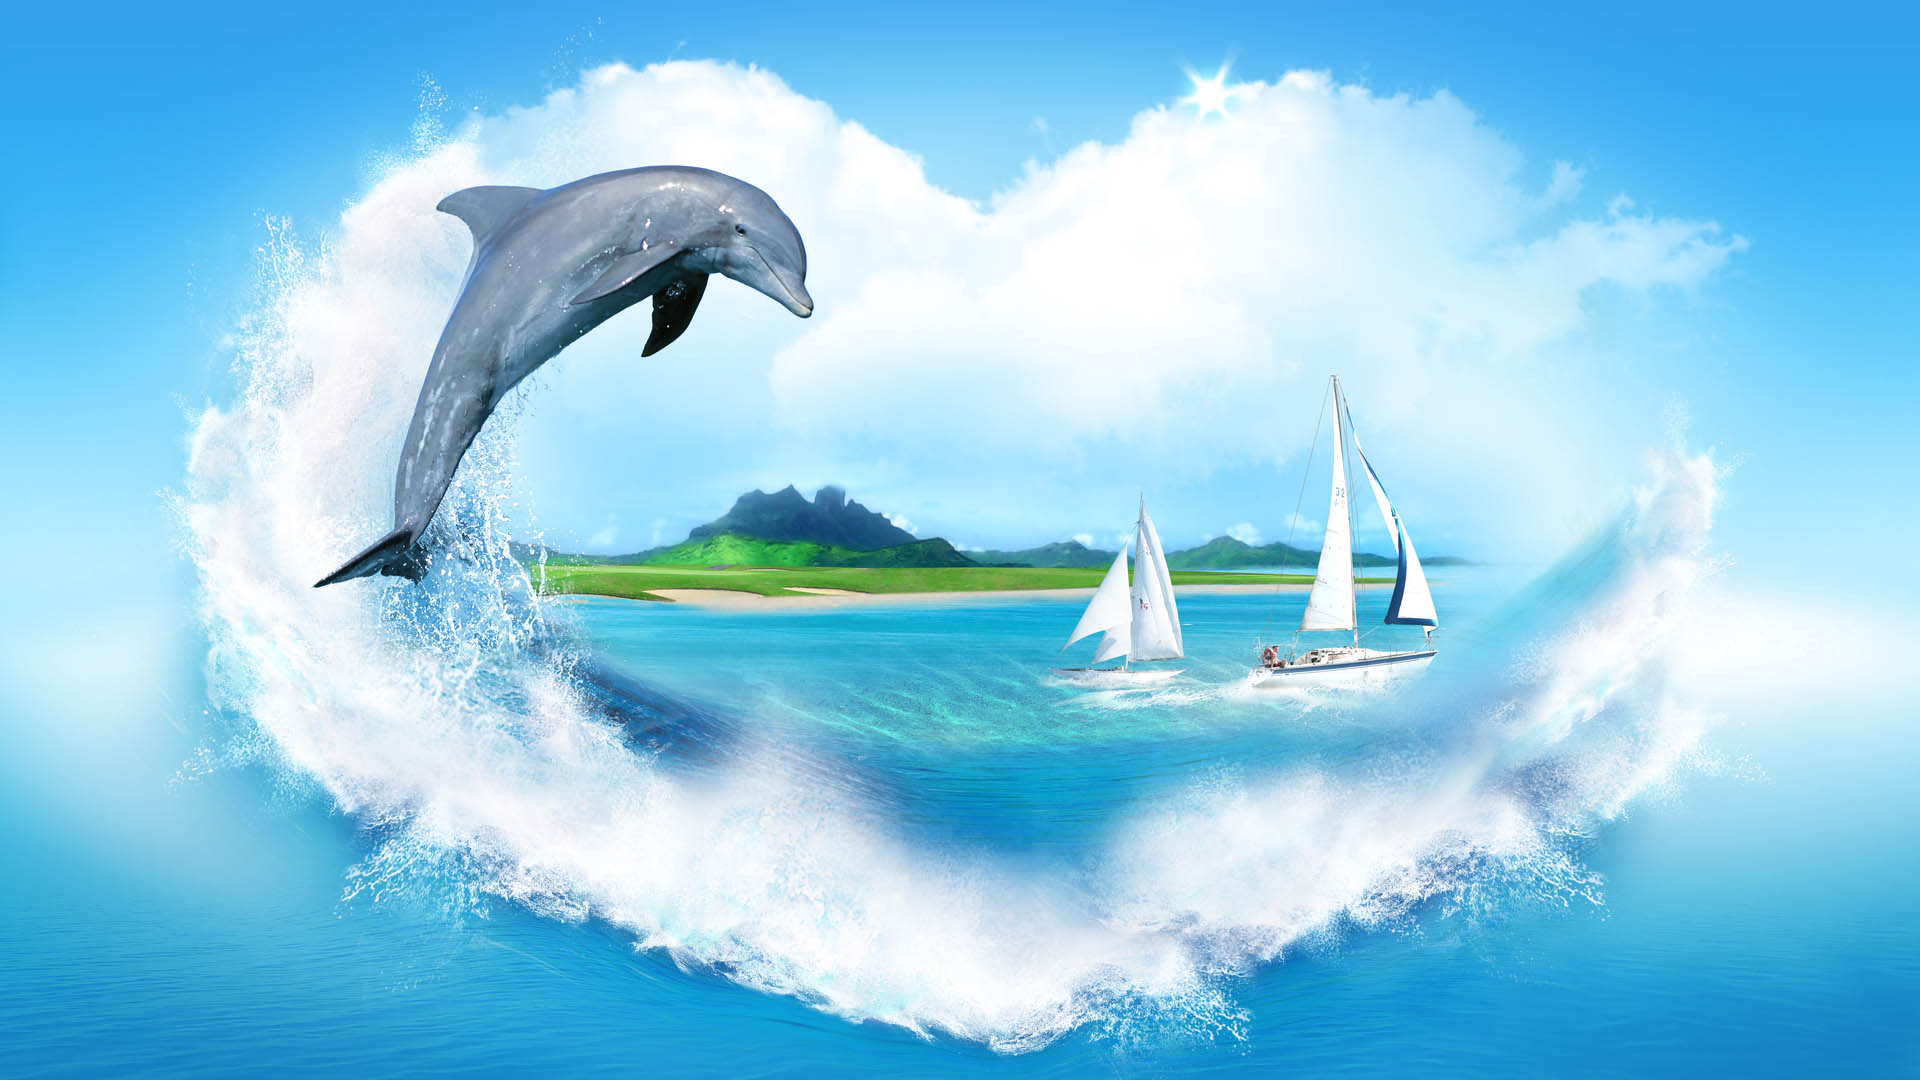 dolphin-Best-Background-Hd-1920x1080-wallpaper-wpc5804210